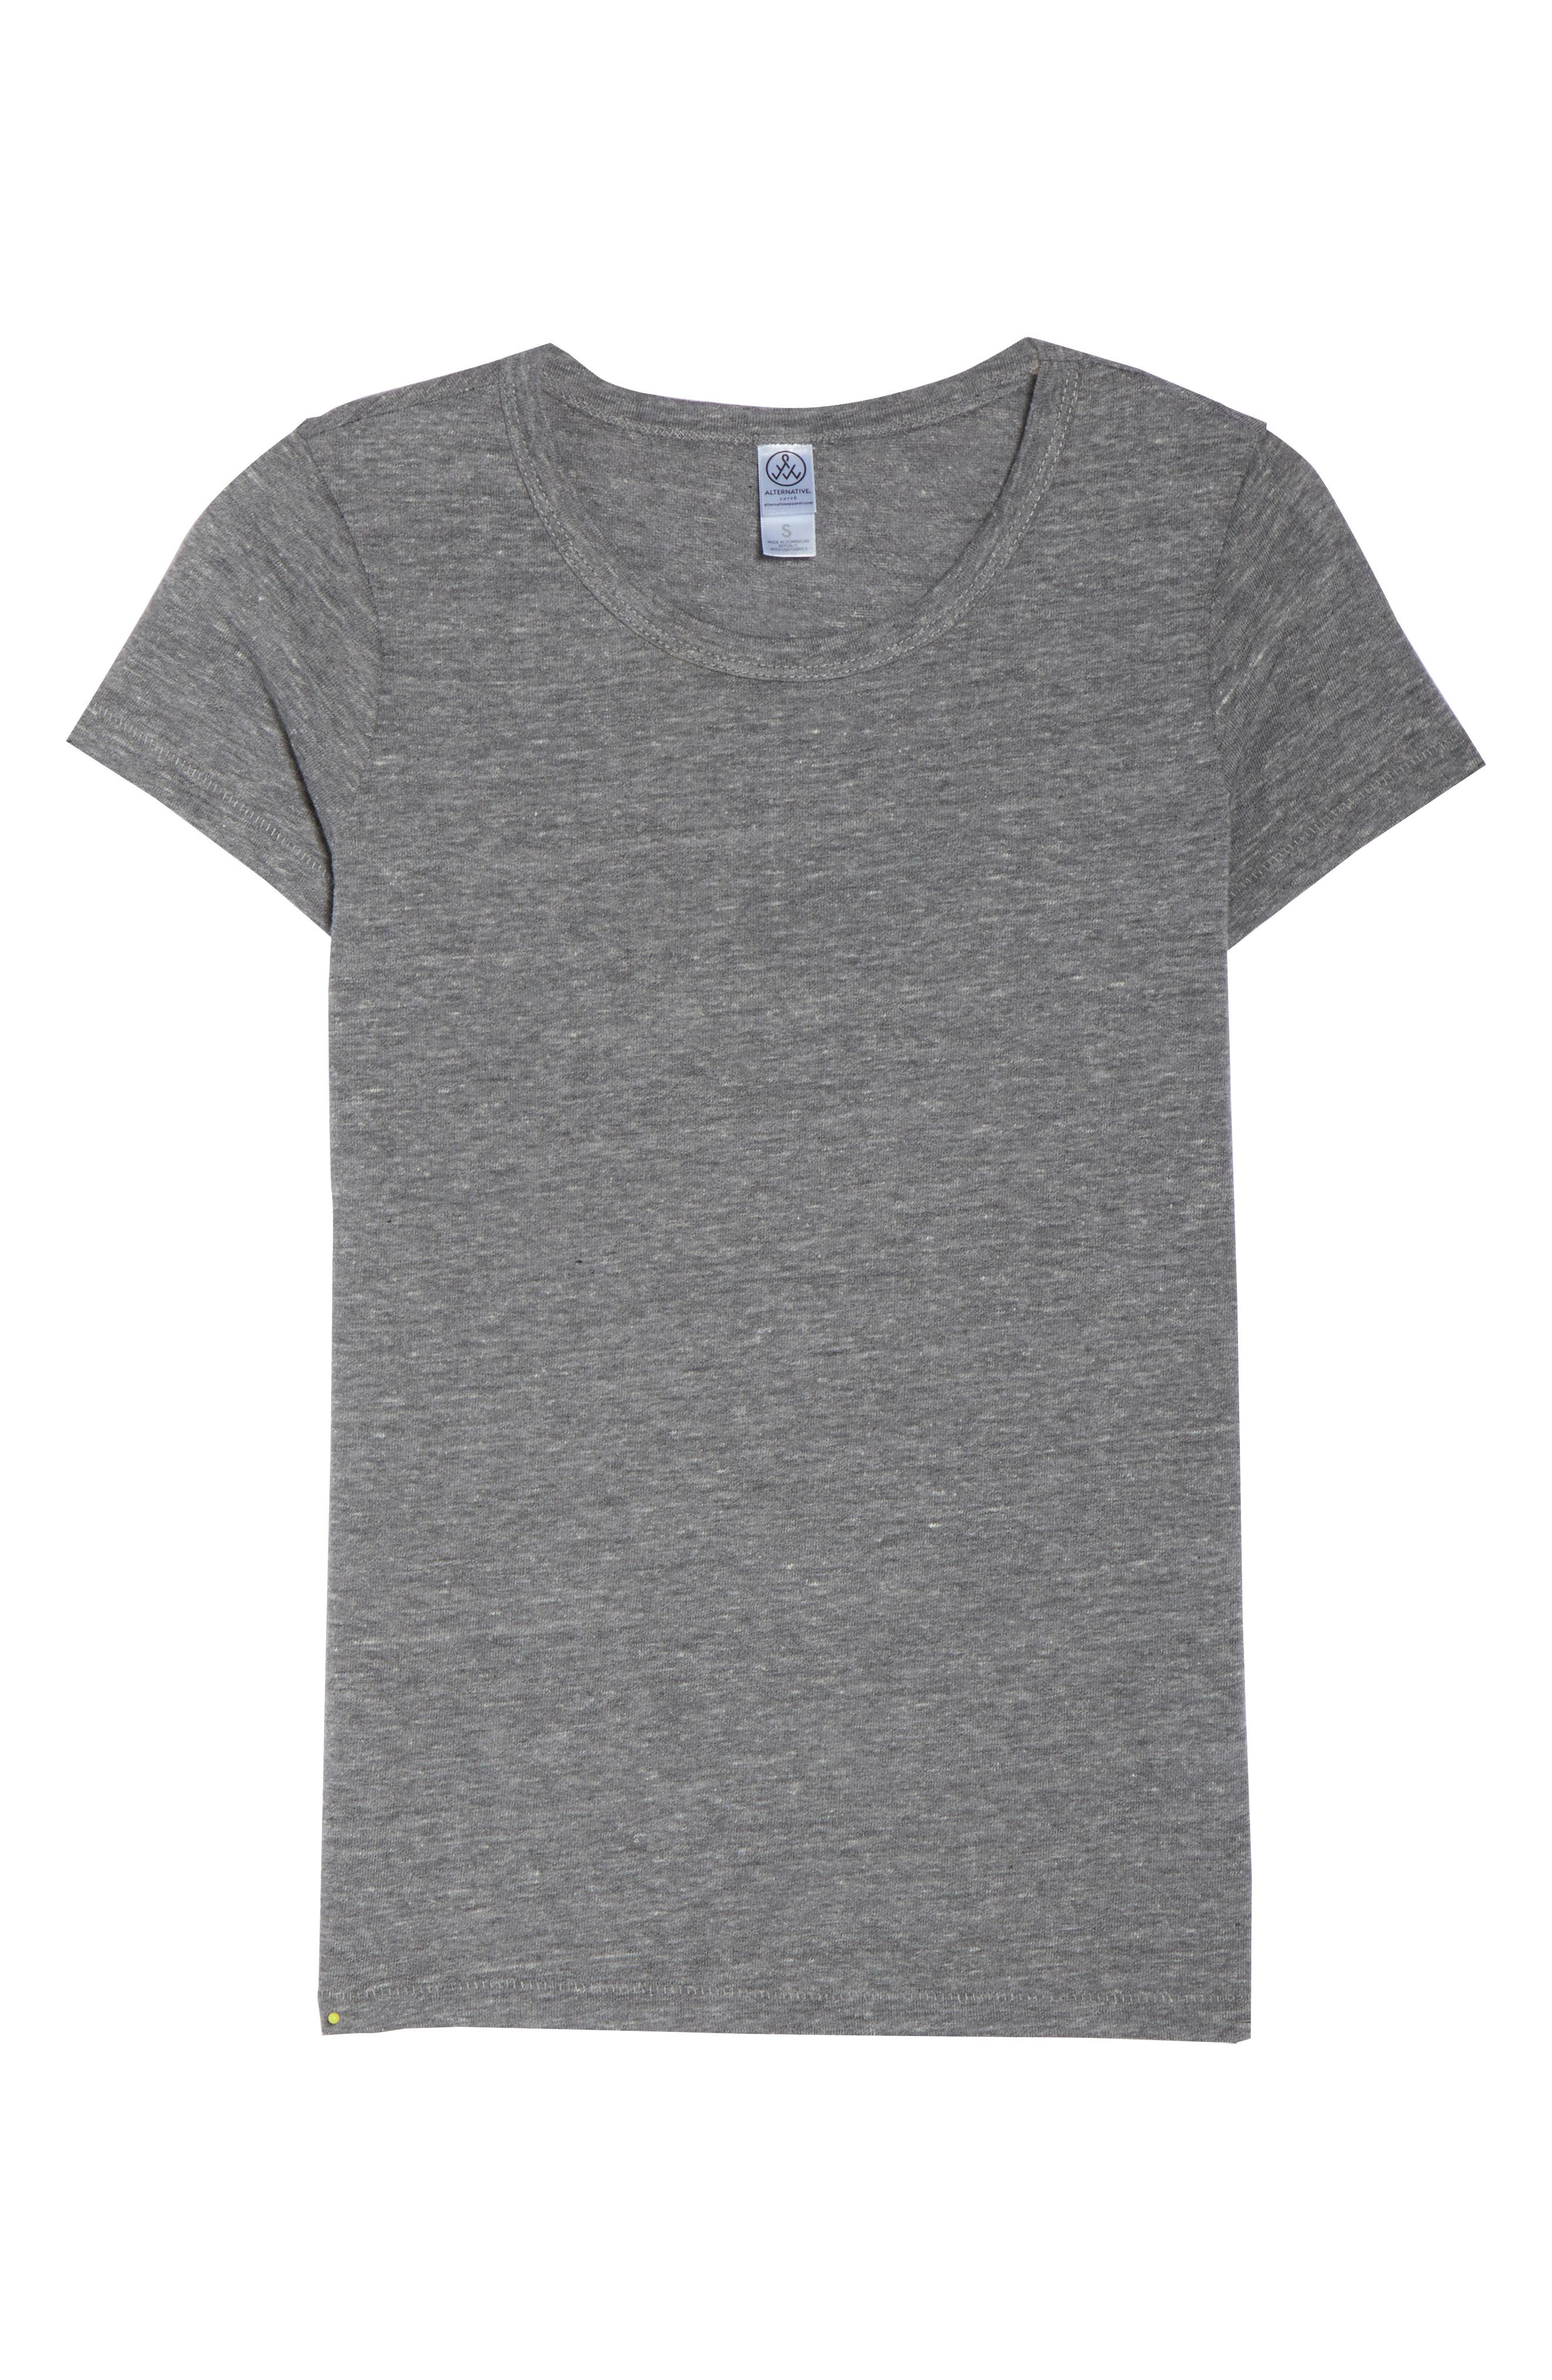 Ideal Tee,                             Alternate thumbnail 4, color,                             Eco Grey